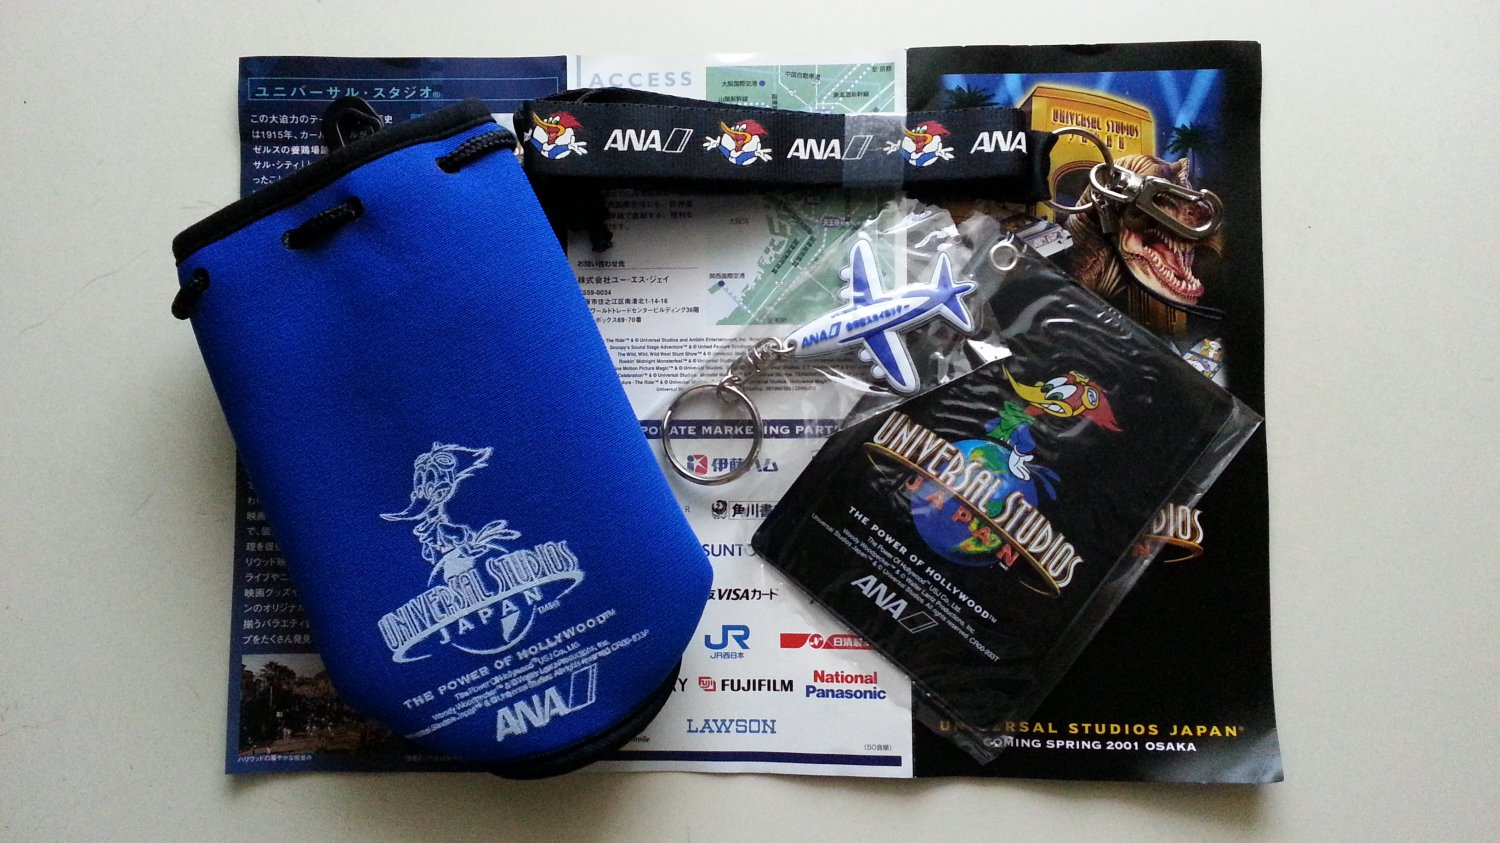 ANA X Universal Studios Japan Grand Opening 2001 All Nippon Airways Gift Package